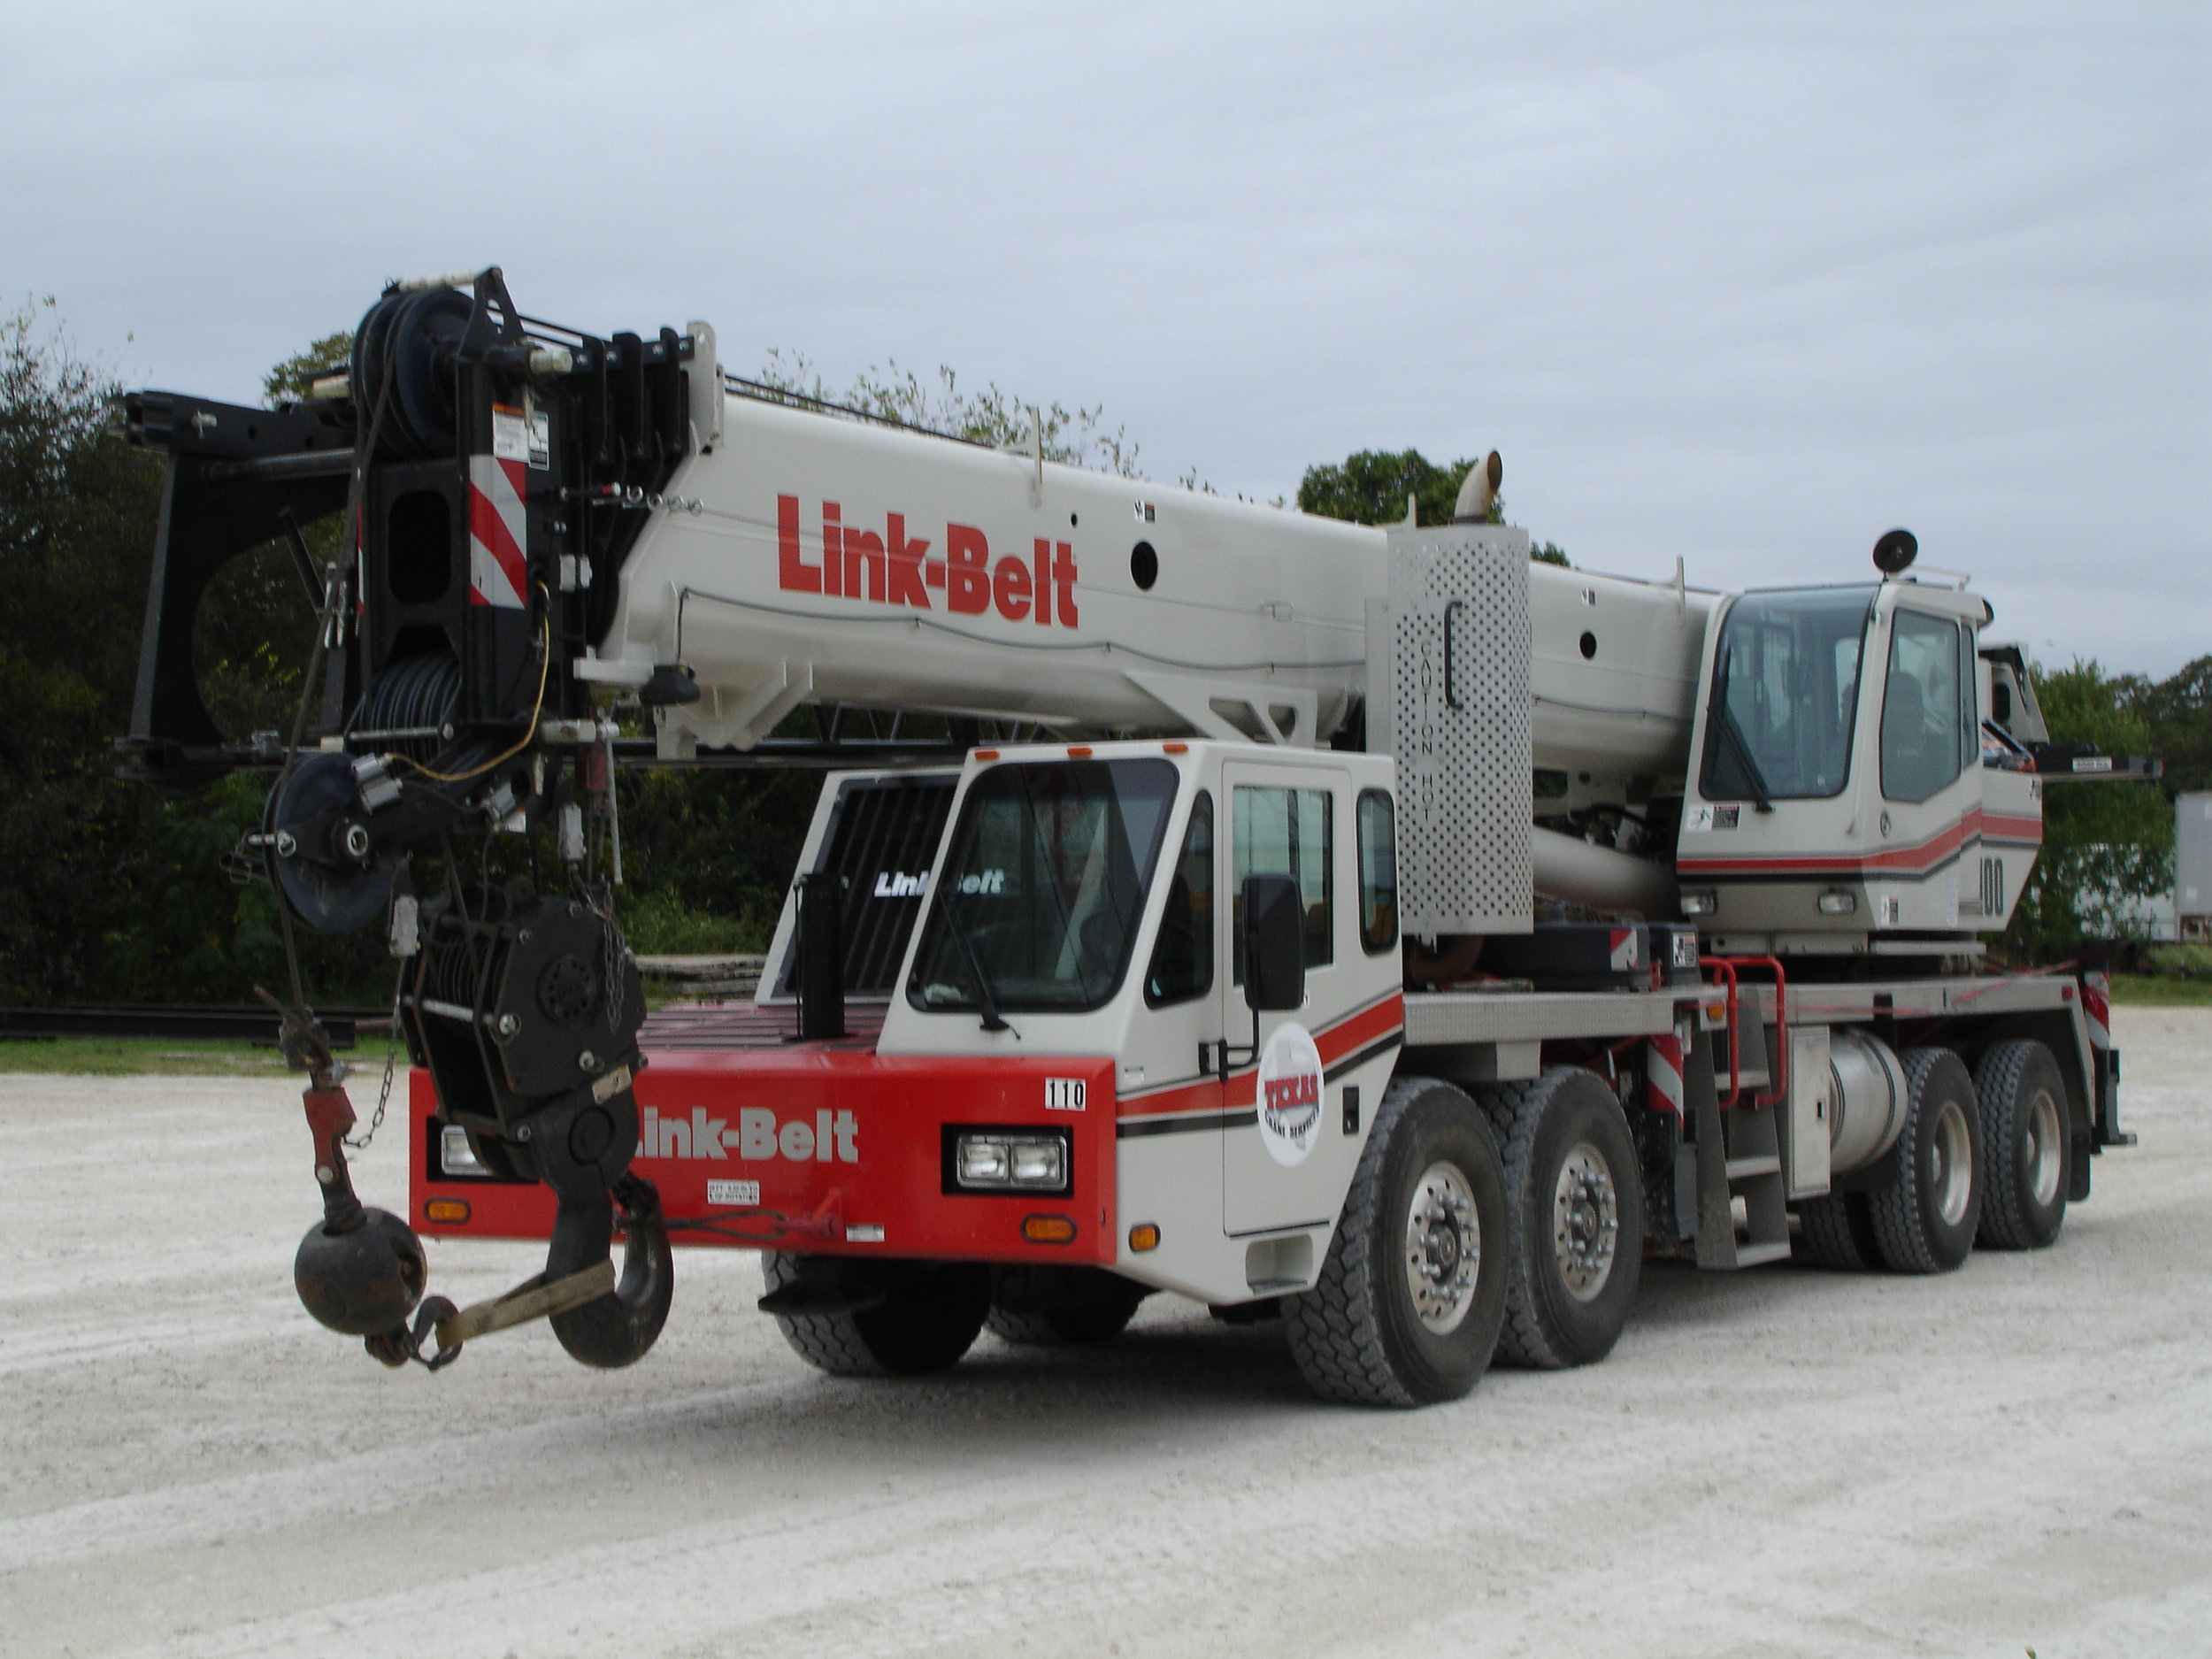 TRUCK-MOUNTED HYDRAULIC CRANE (Industry terminology- TC's or Hydro's)